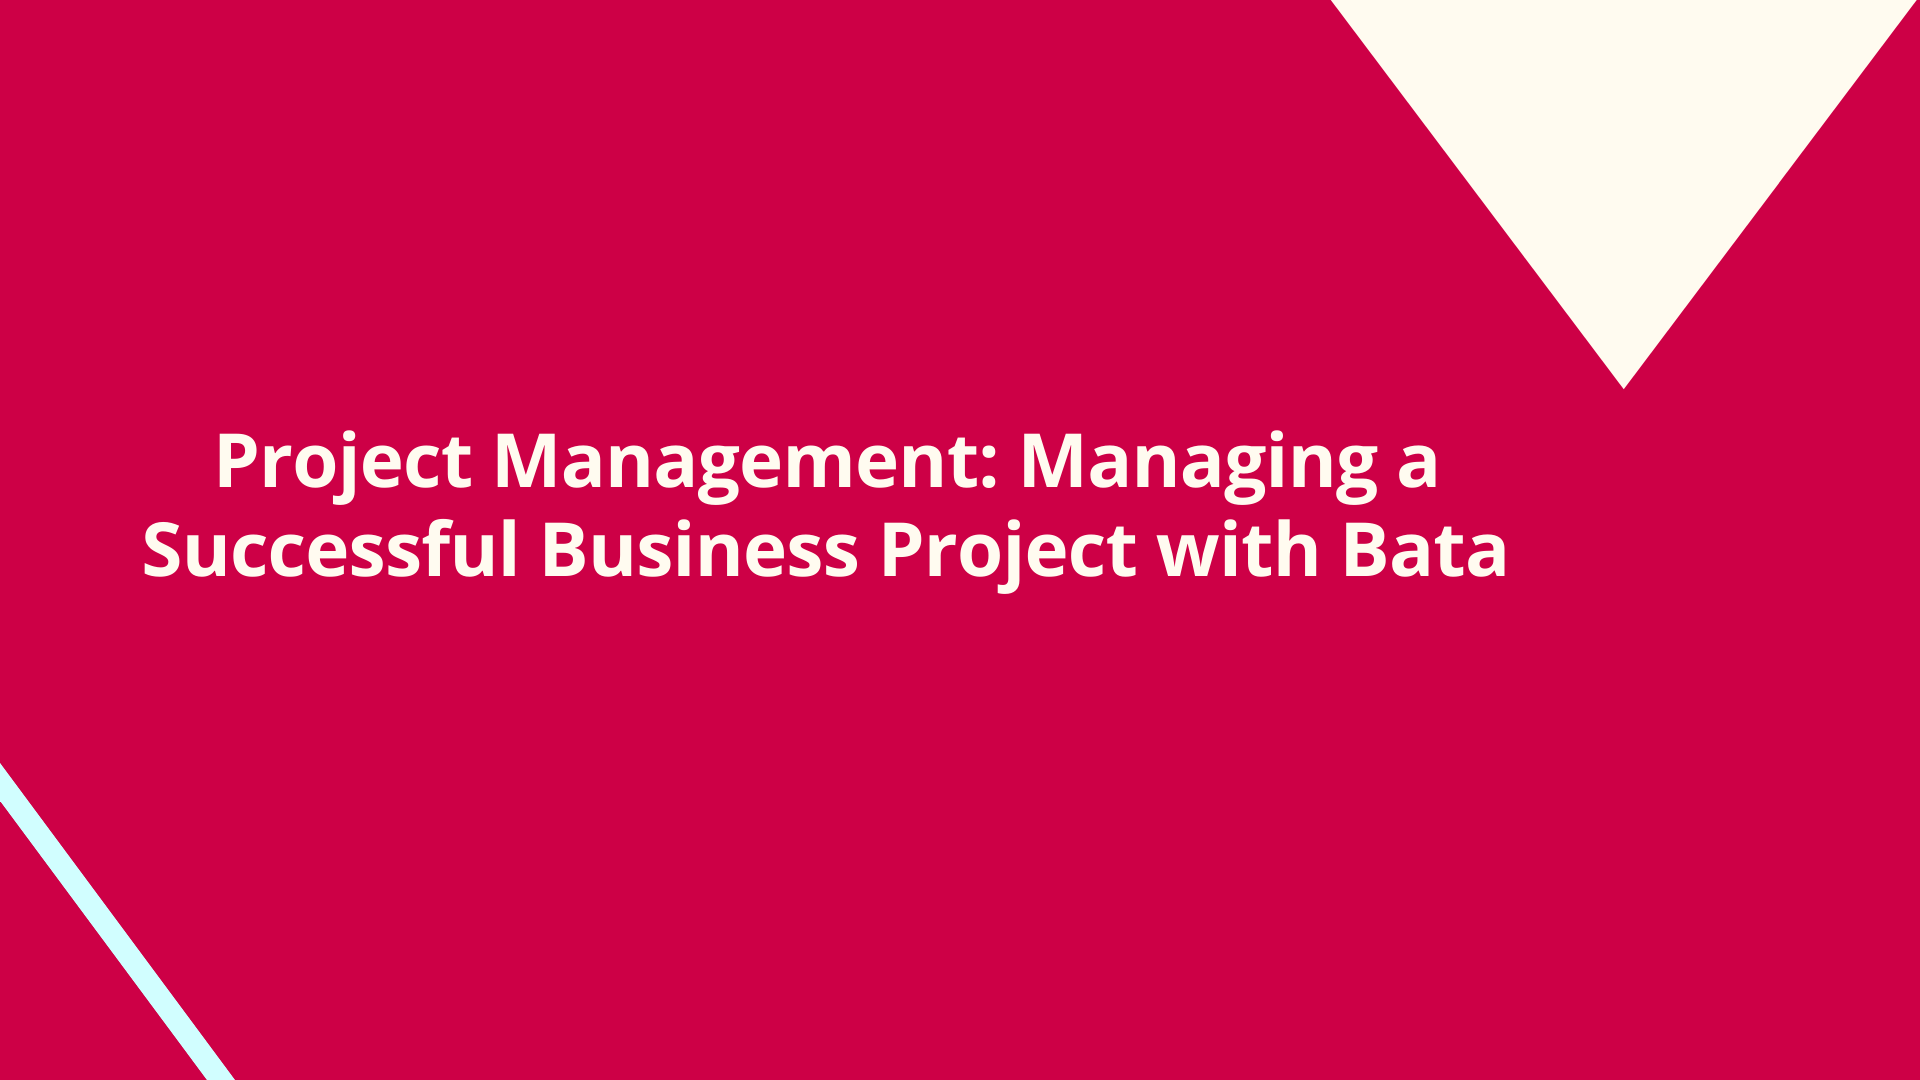 Project Management: Managing a Successful Business Project by Bata